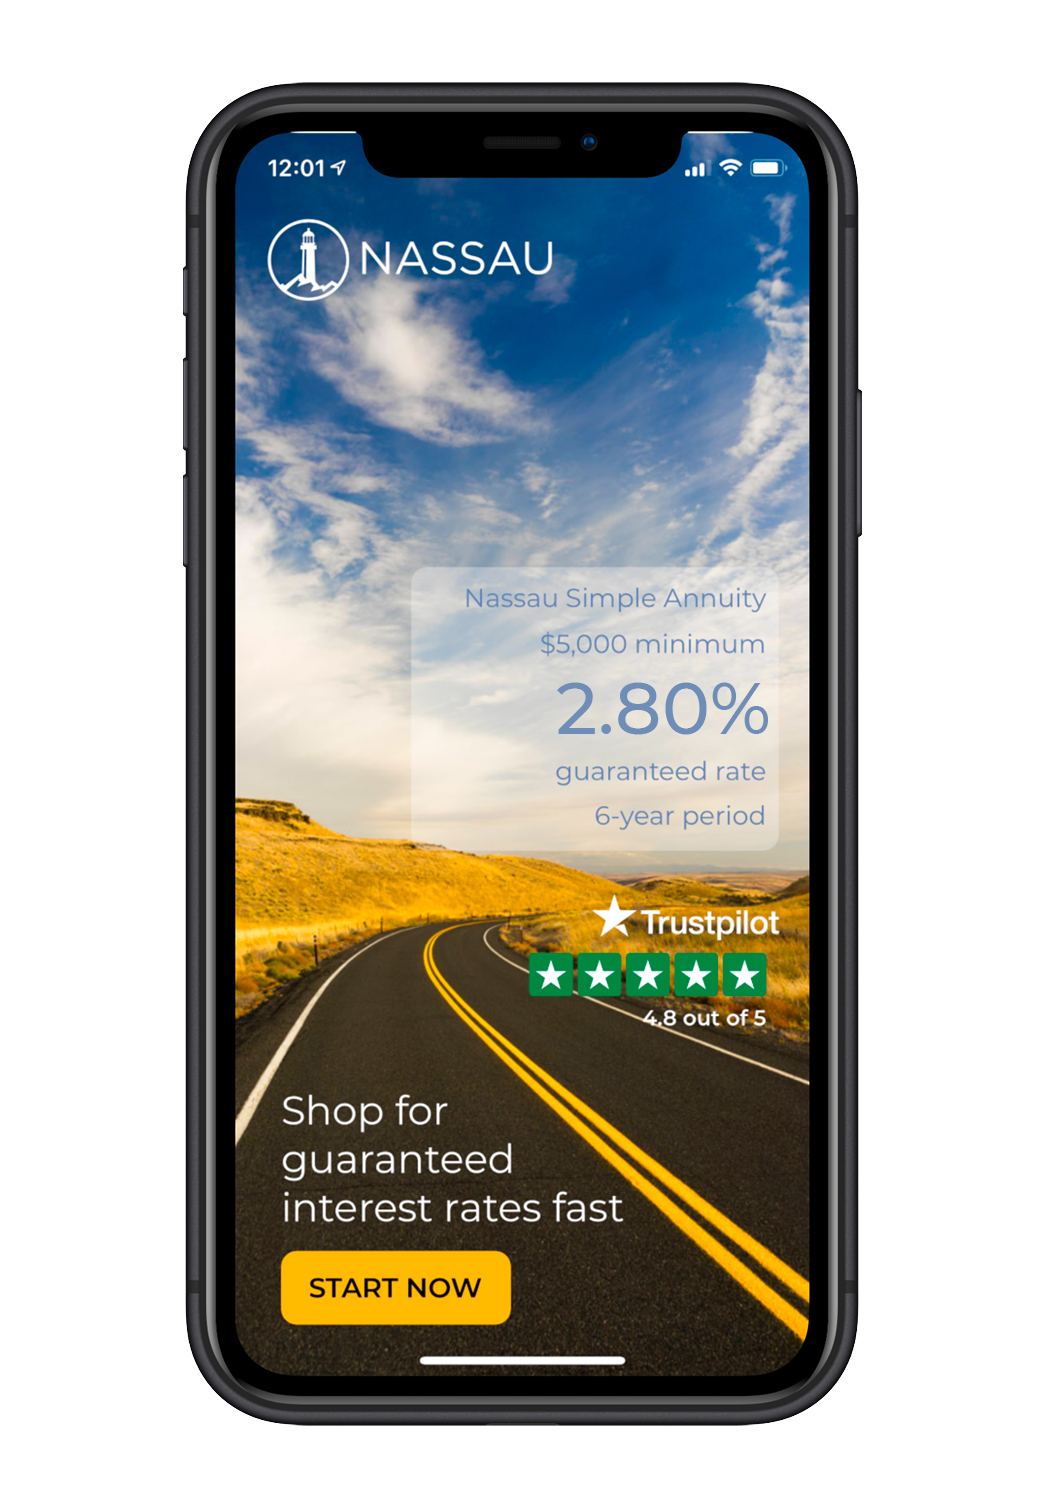 Nassau IOS App screen